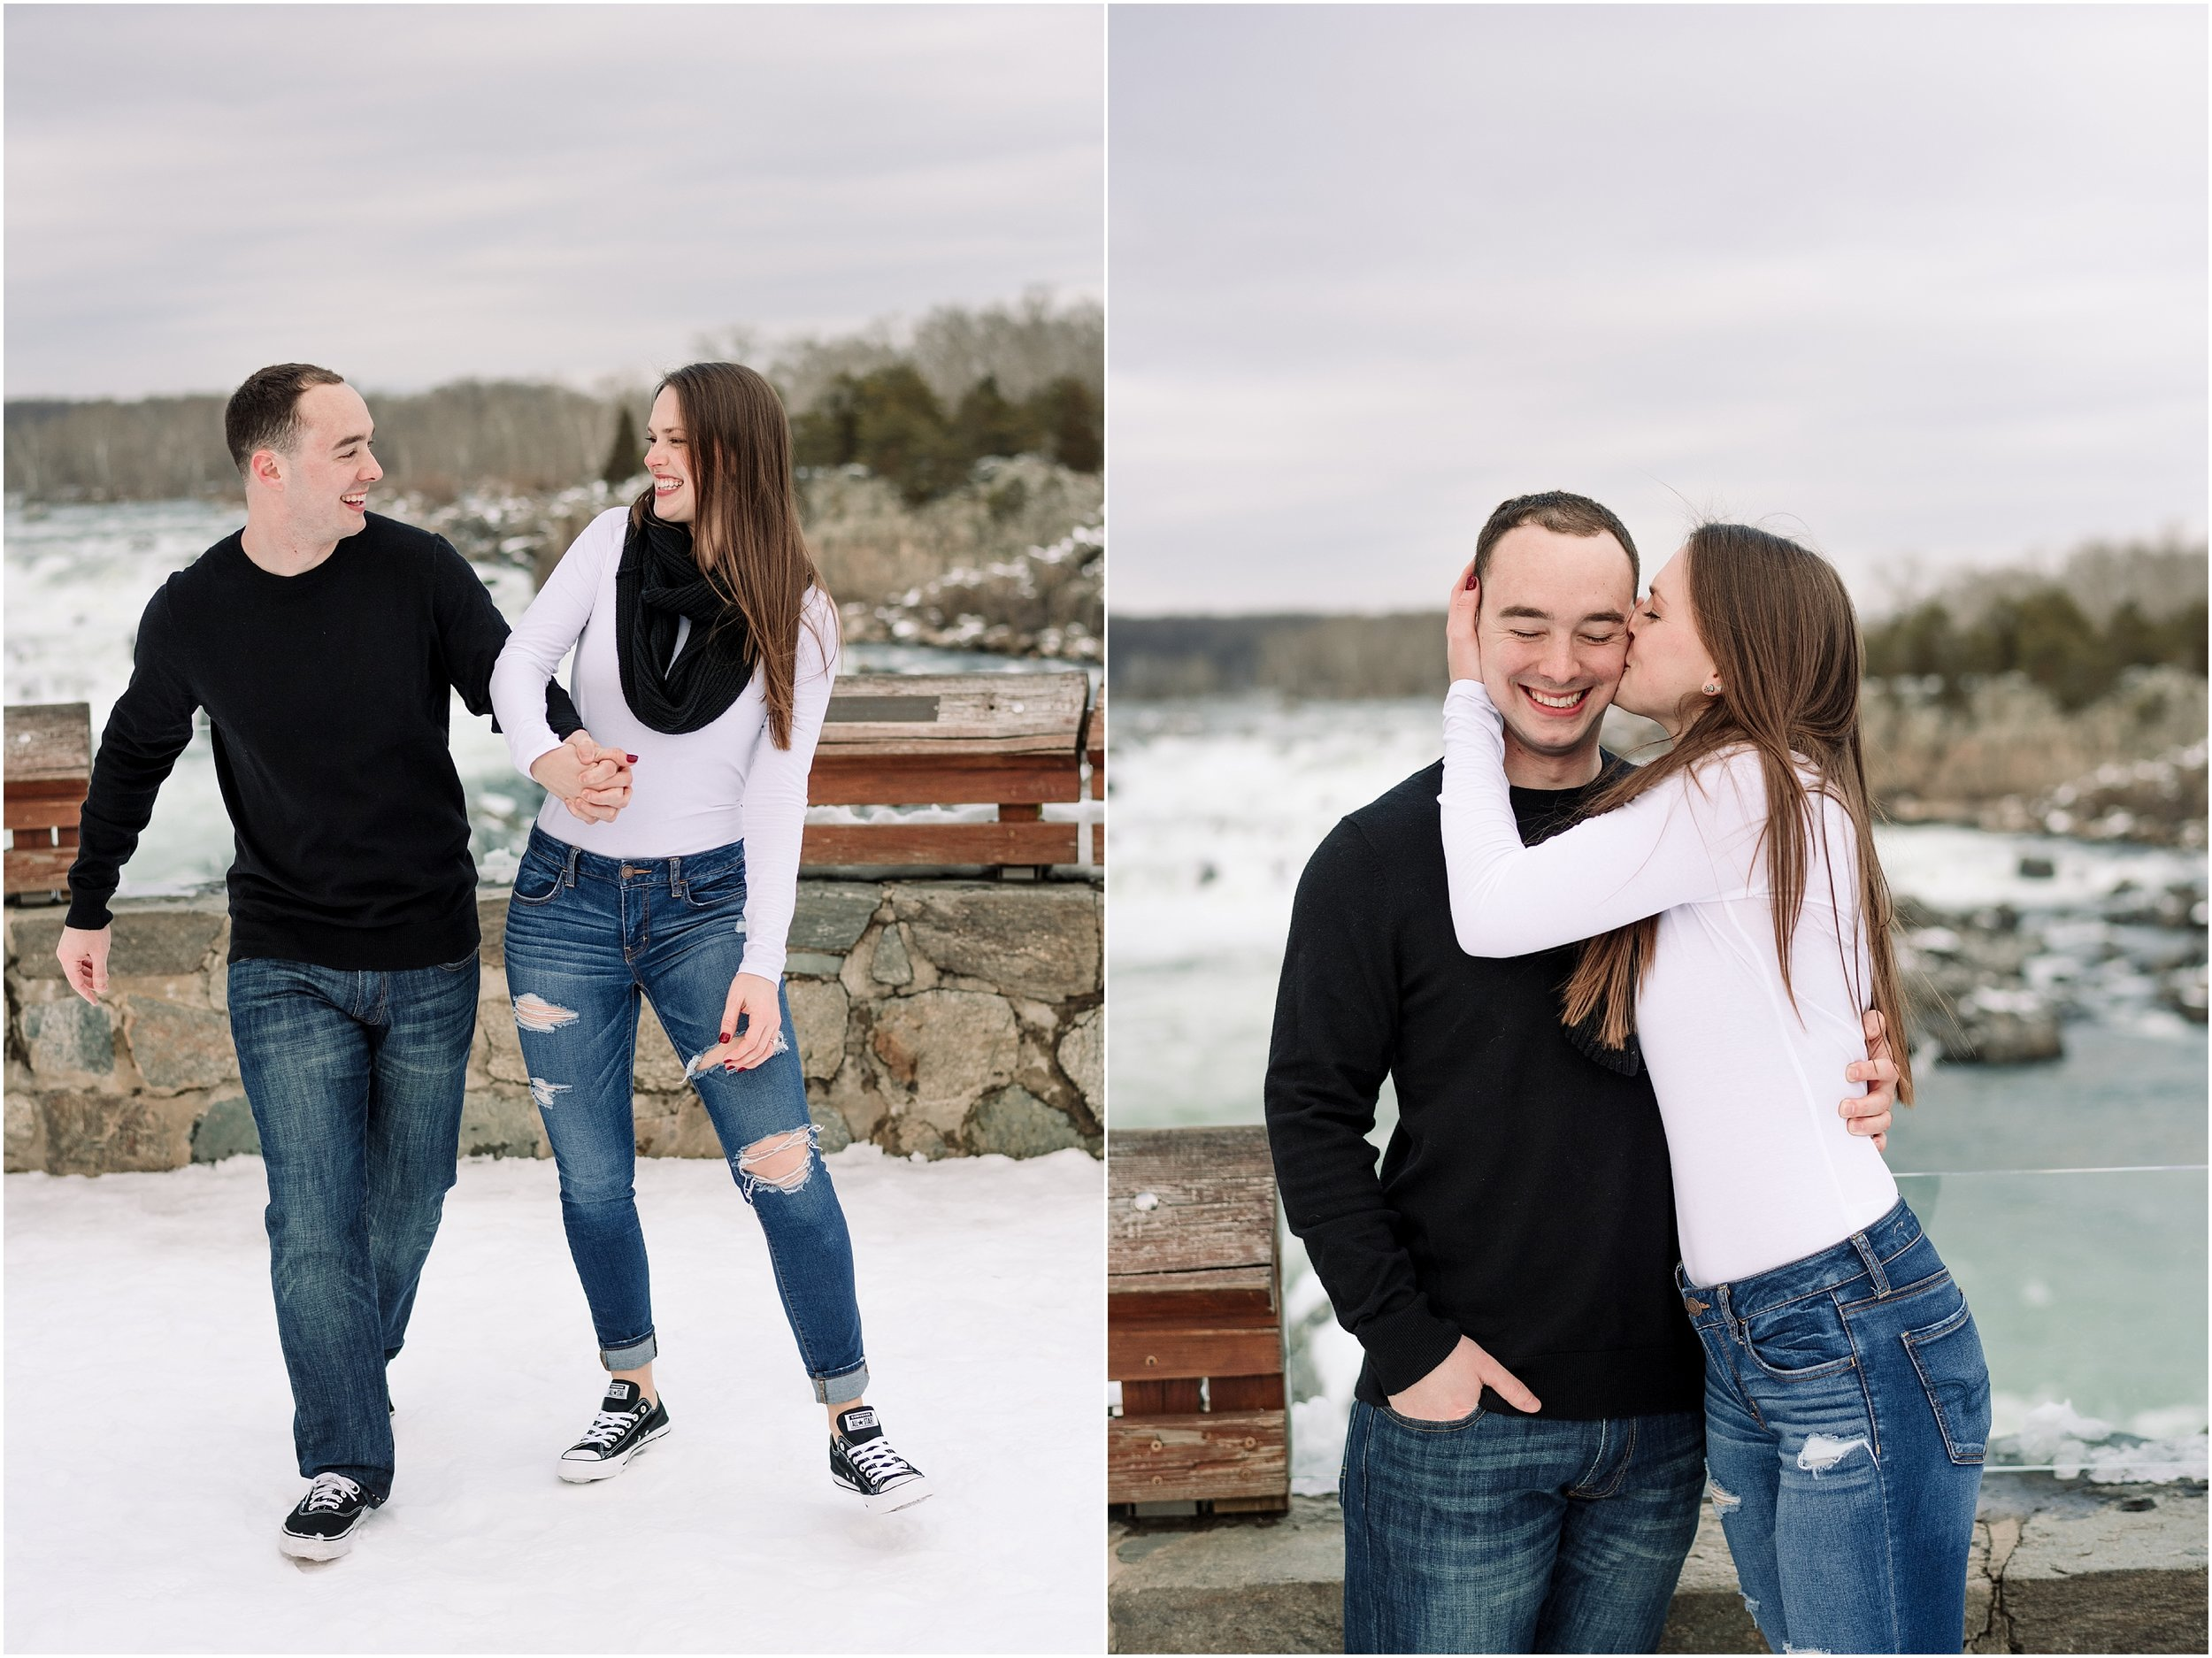 hannah leigh photography great falls virginia engagement session_2833.jpg